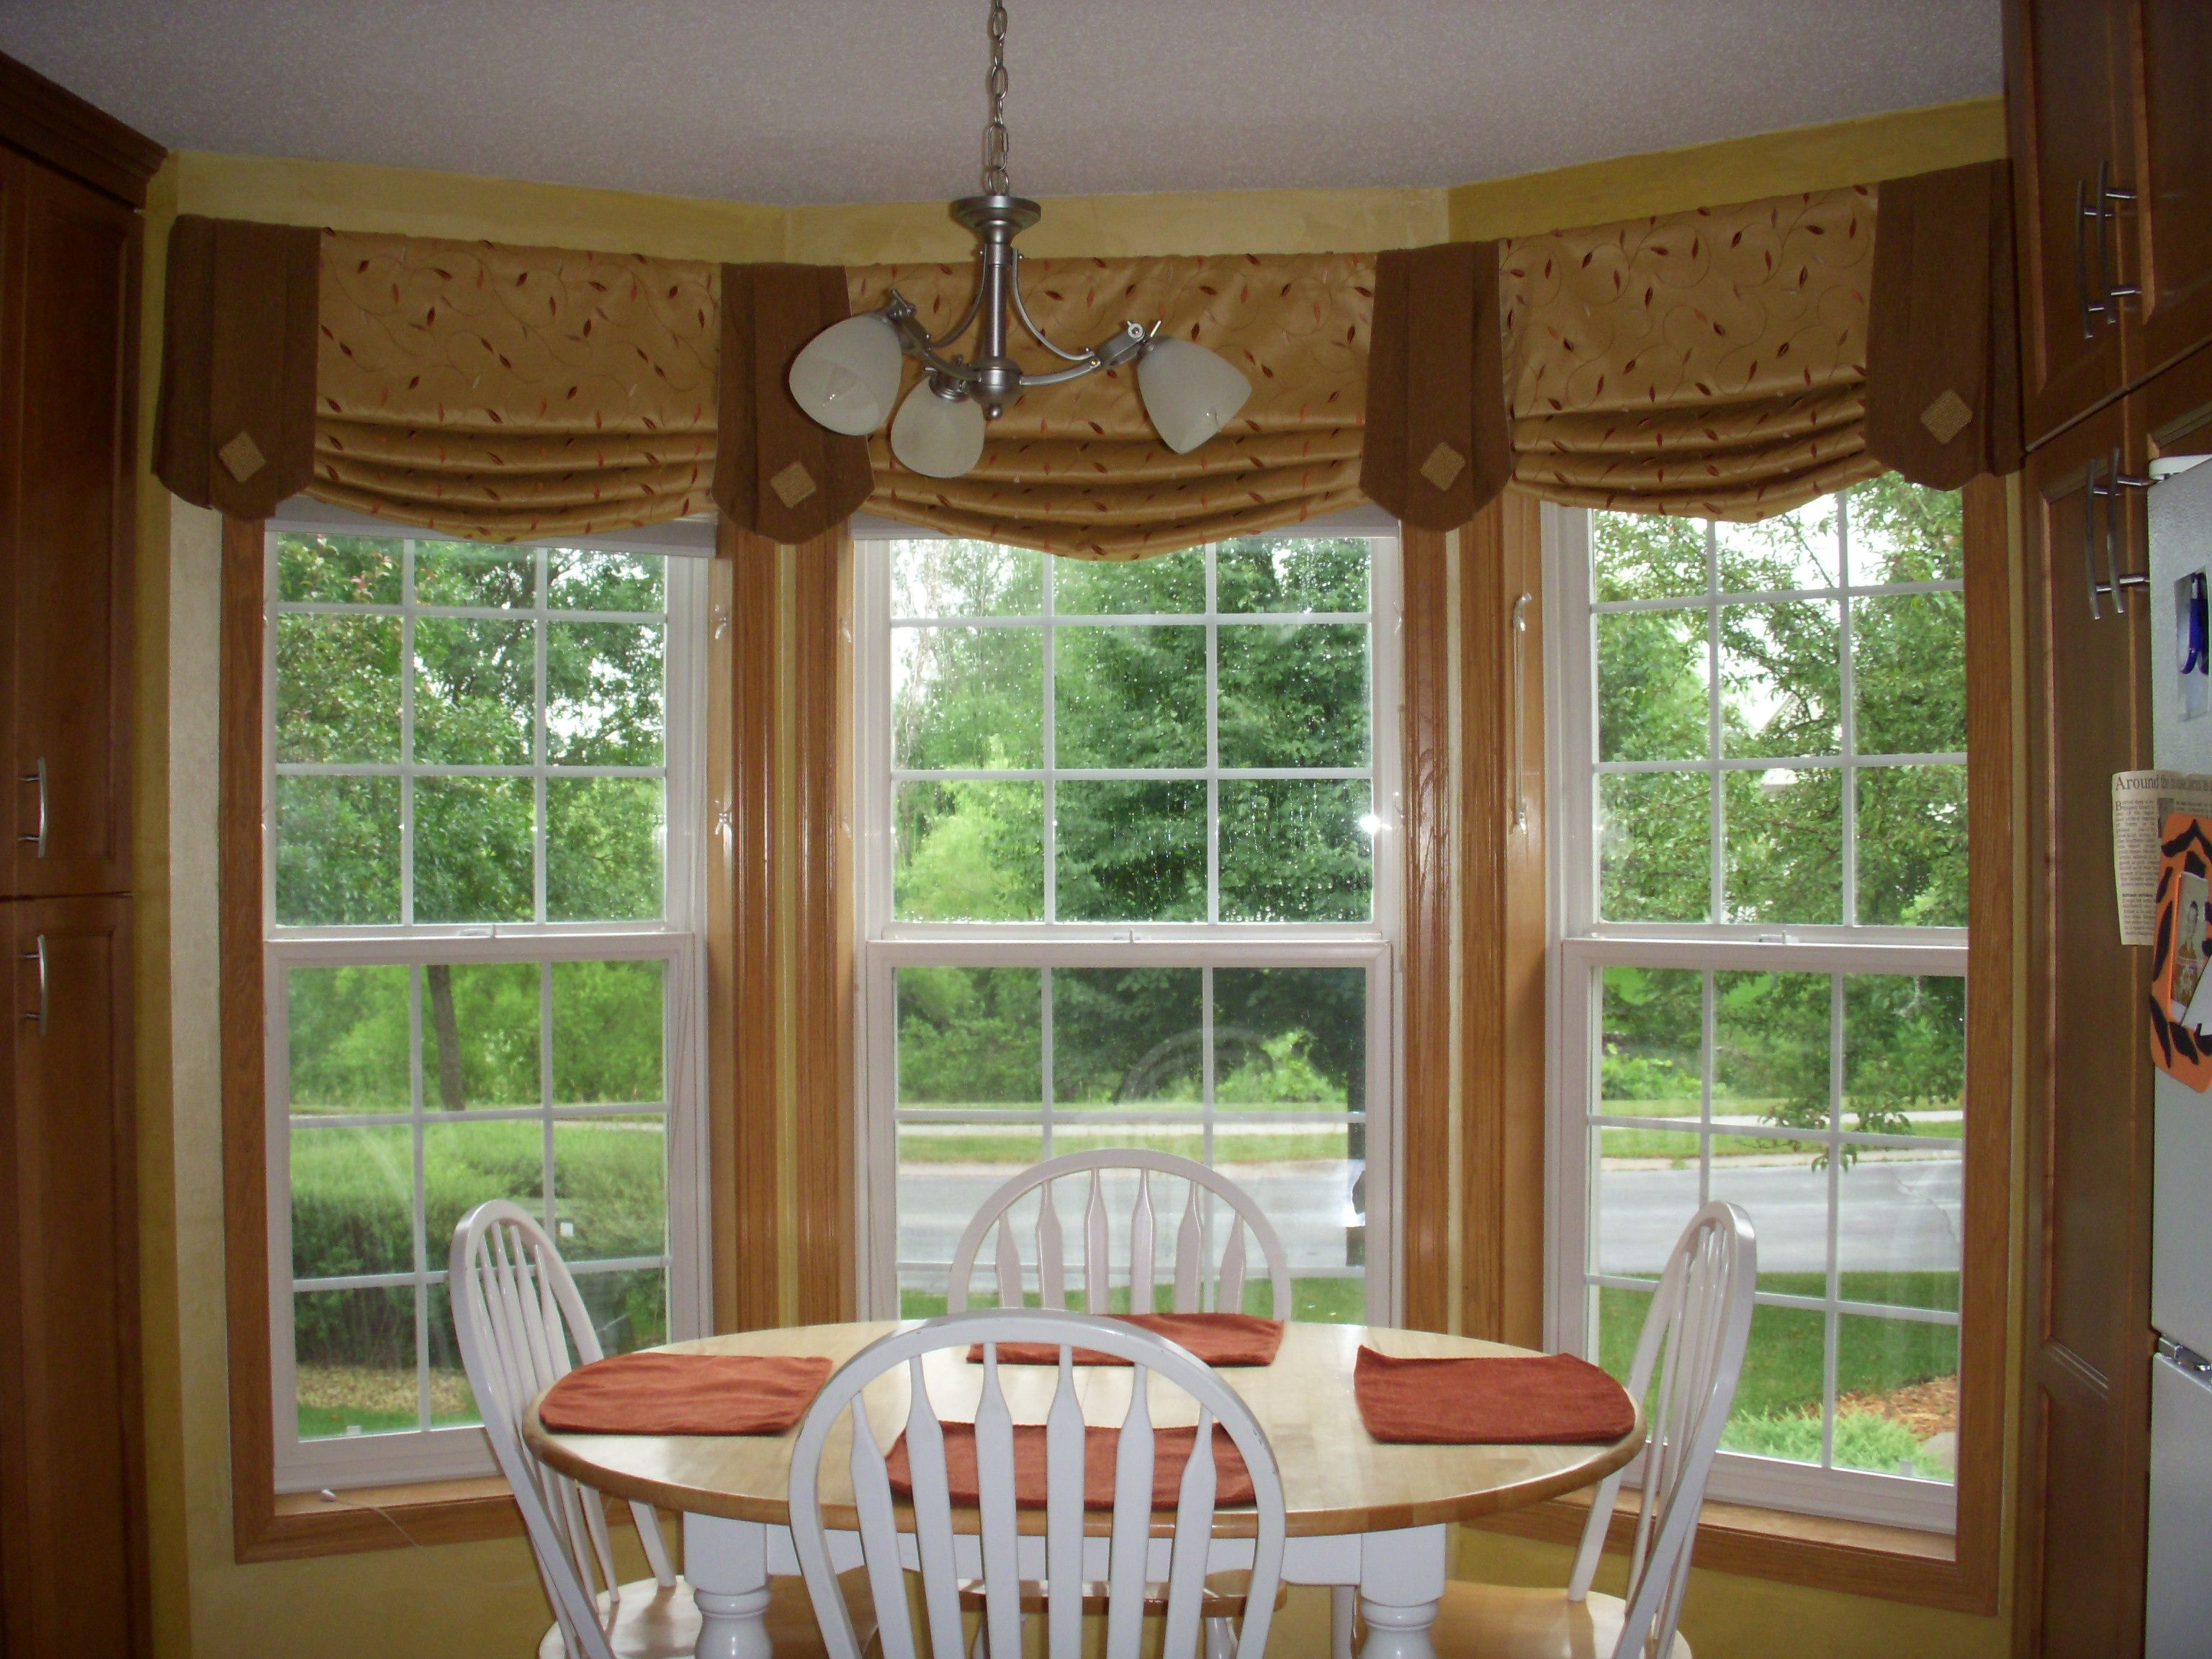 Inspirations Architecture Interior Bay Window Decorating Ideas Design Covering Windows No Problem For The Professional